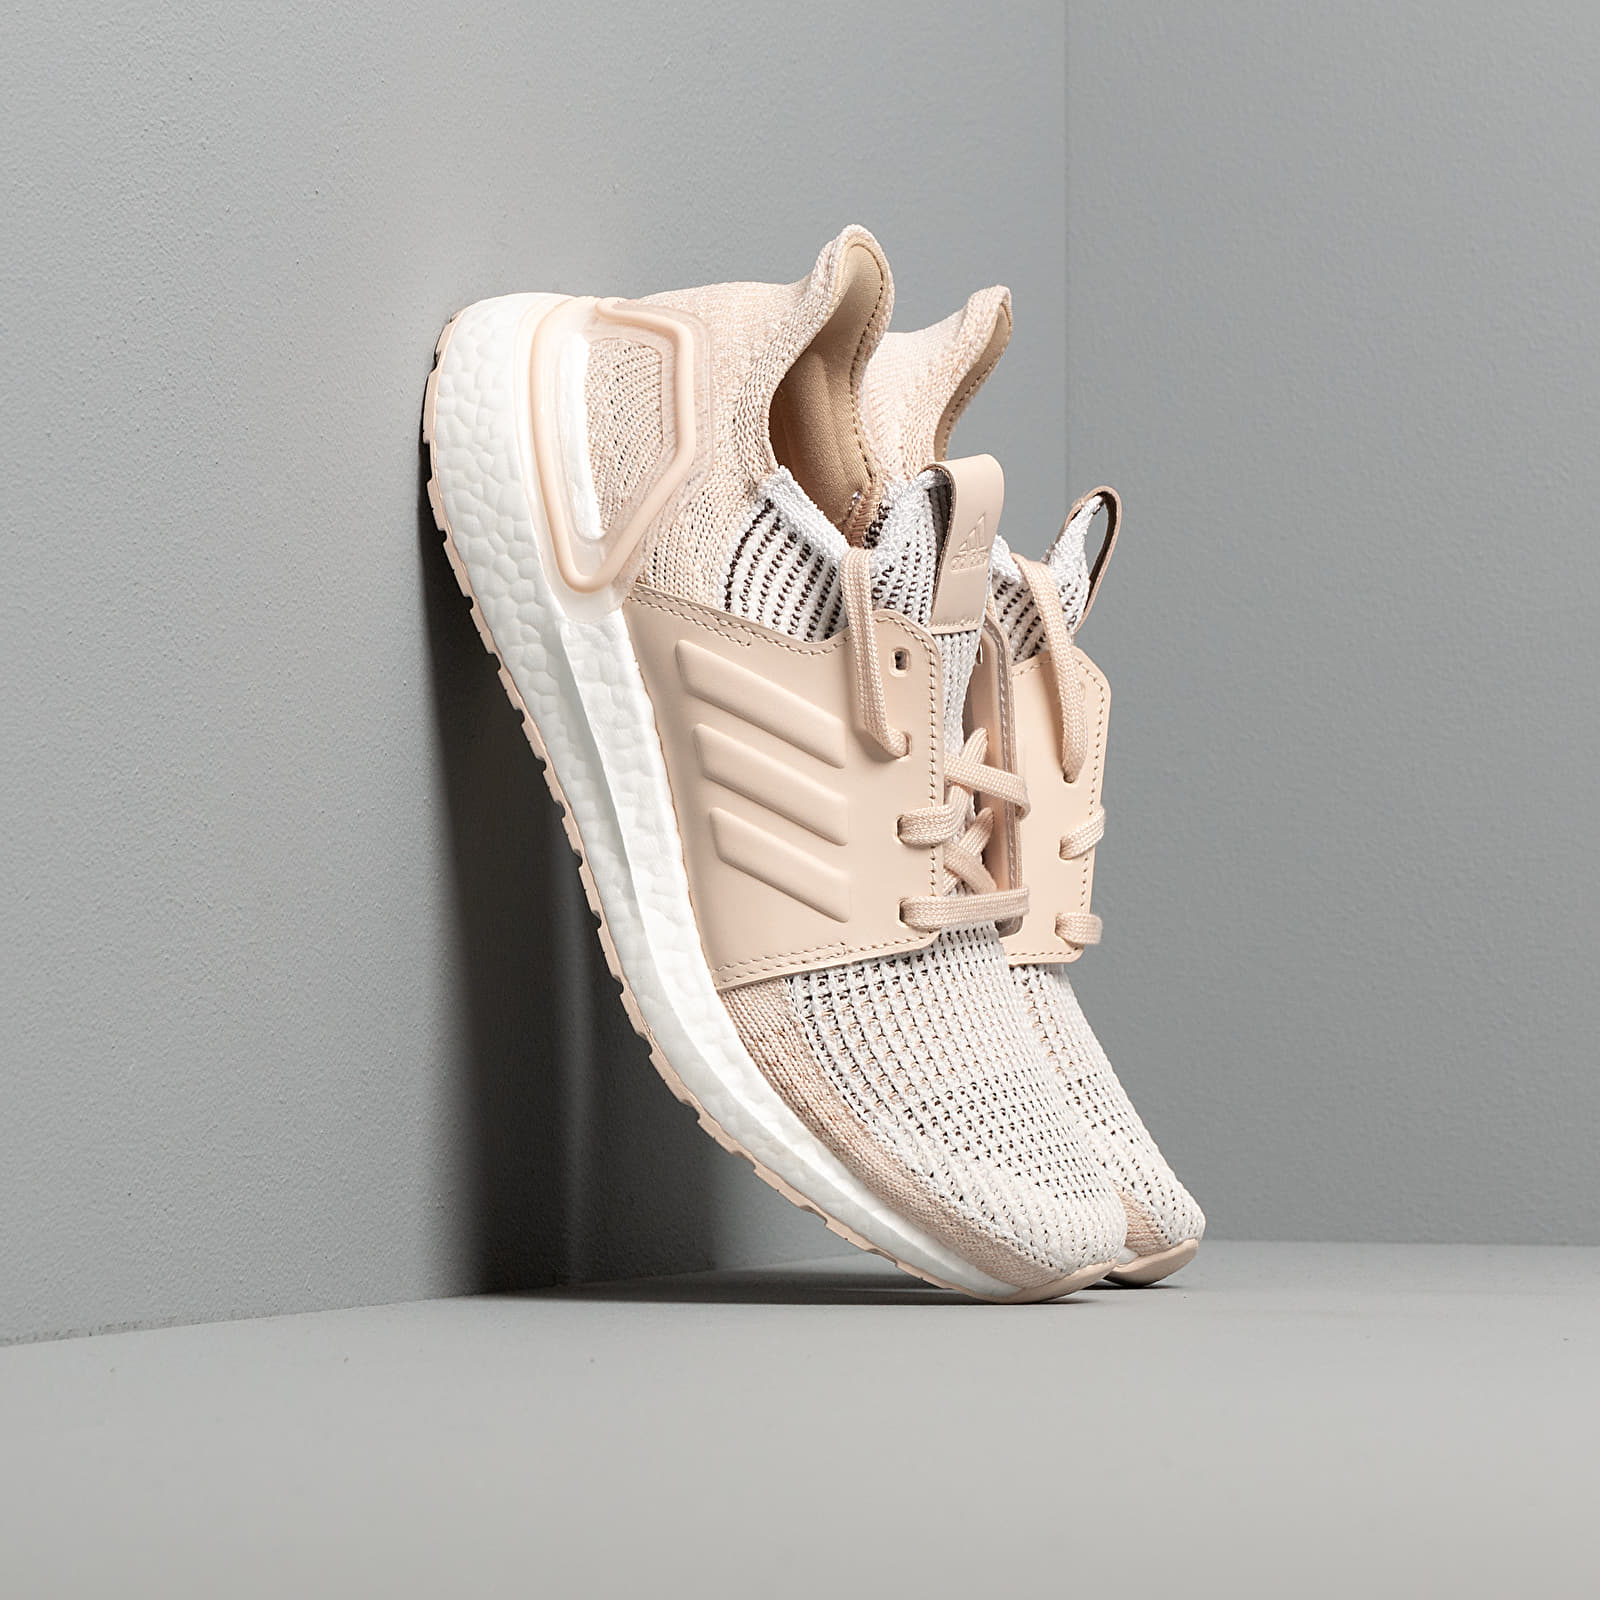 Women's shoes adidas UltraBOOST 19 W Crystal White/ Brown/ Linen